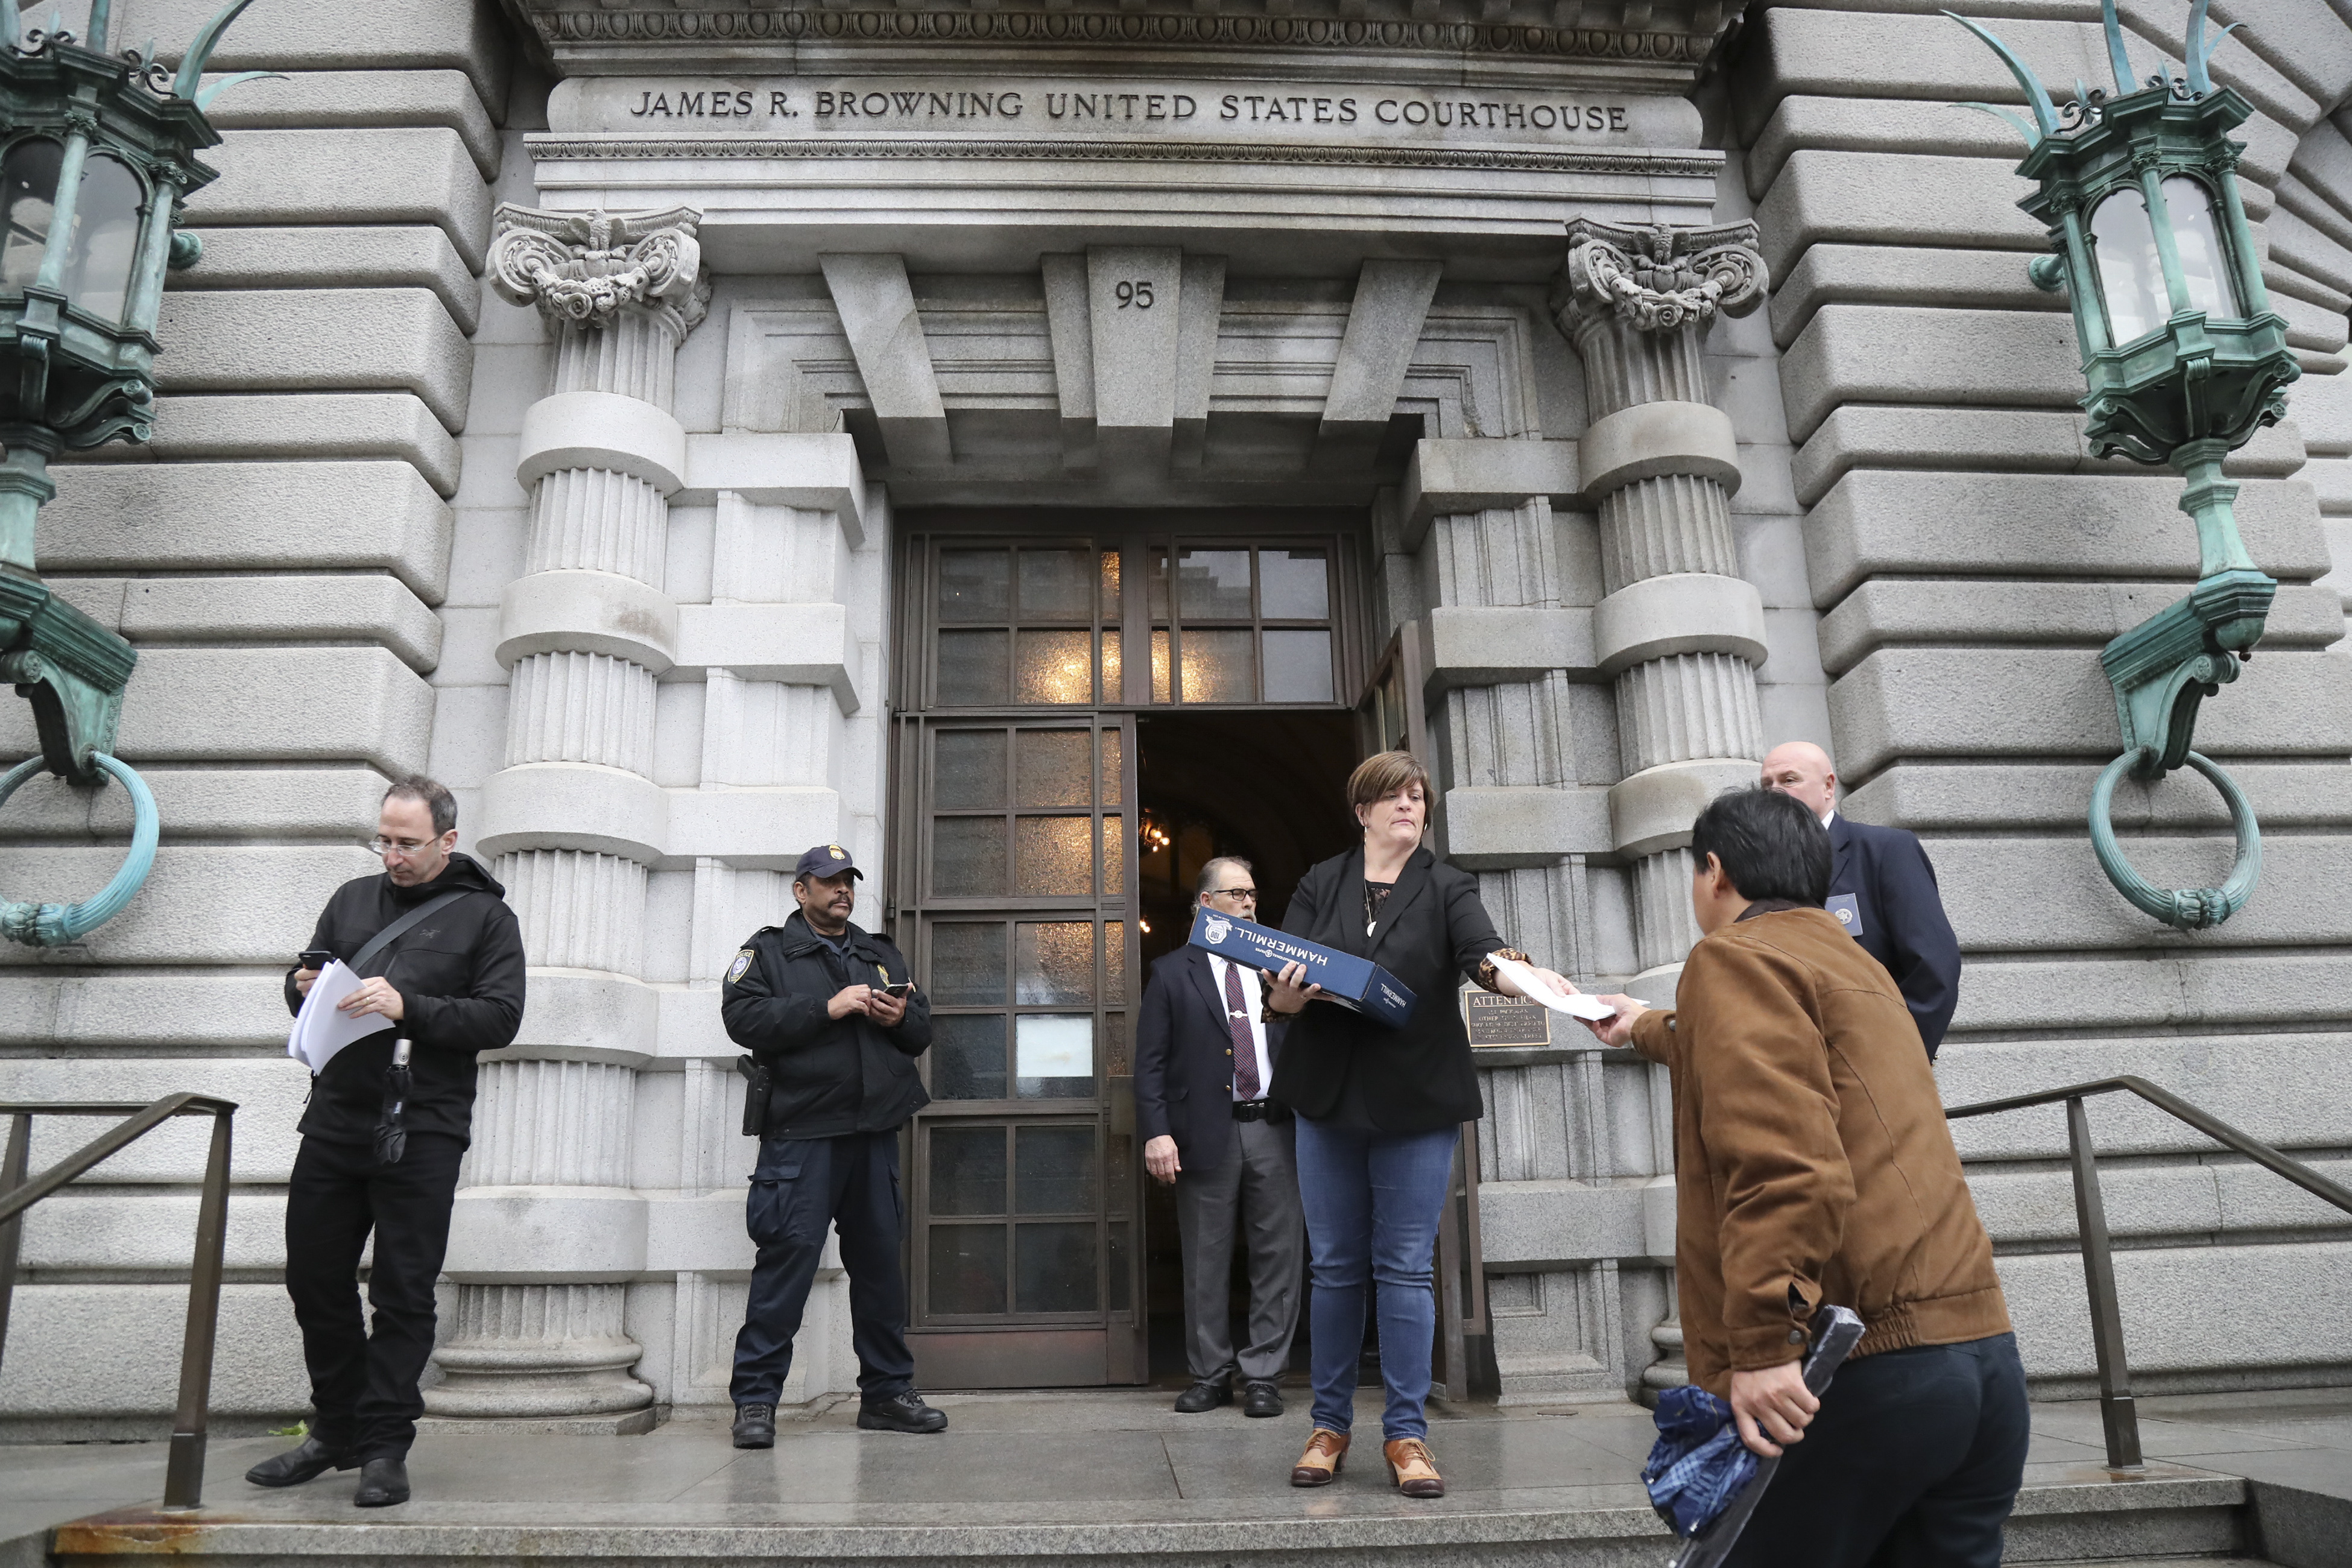 A woman hands out the 9th Circuit Court of Appeals' ruling against President Trump's travel ban, outside the courthouse in San Francisco, Feb. 9, 2017. The court's ruling against the travel ban could be quickly appealed to the short-handed U.S. Supreme Court. (Jim Wilson/The New York Times)